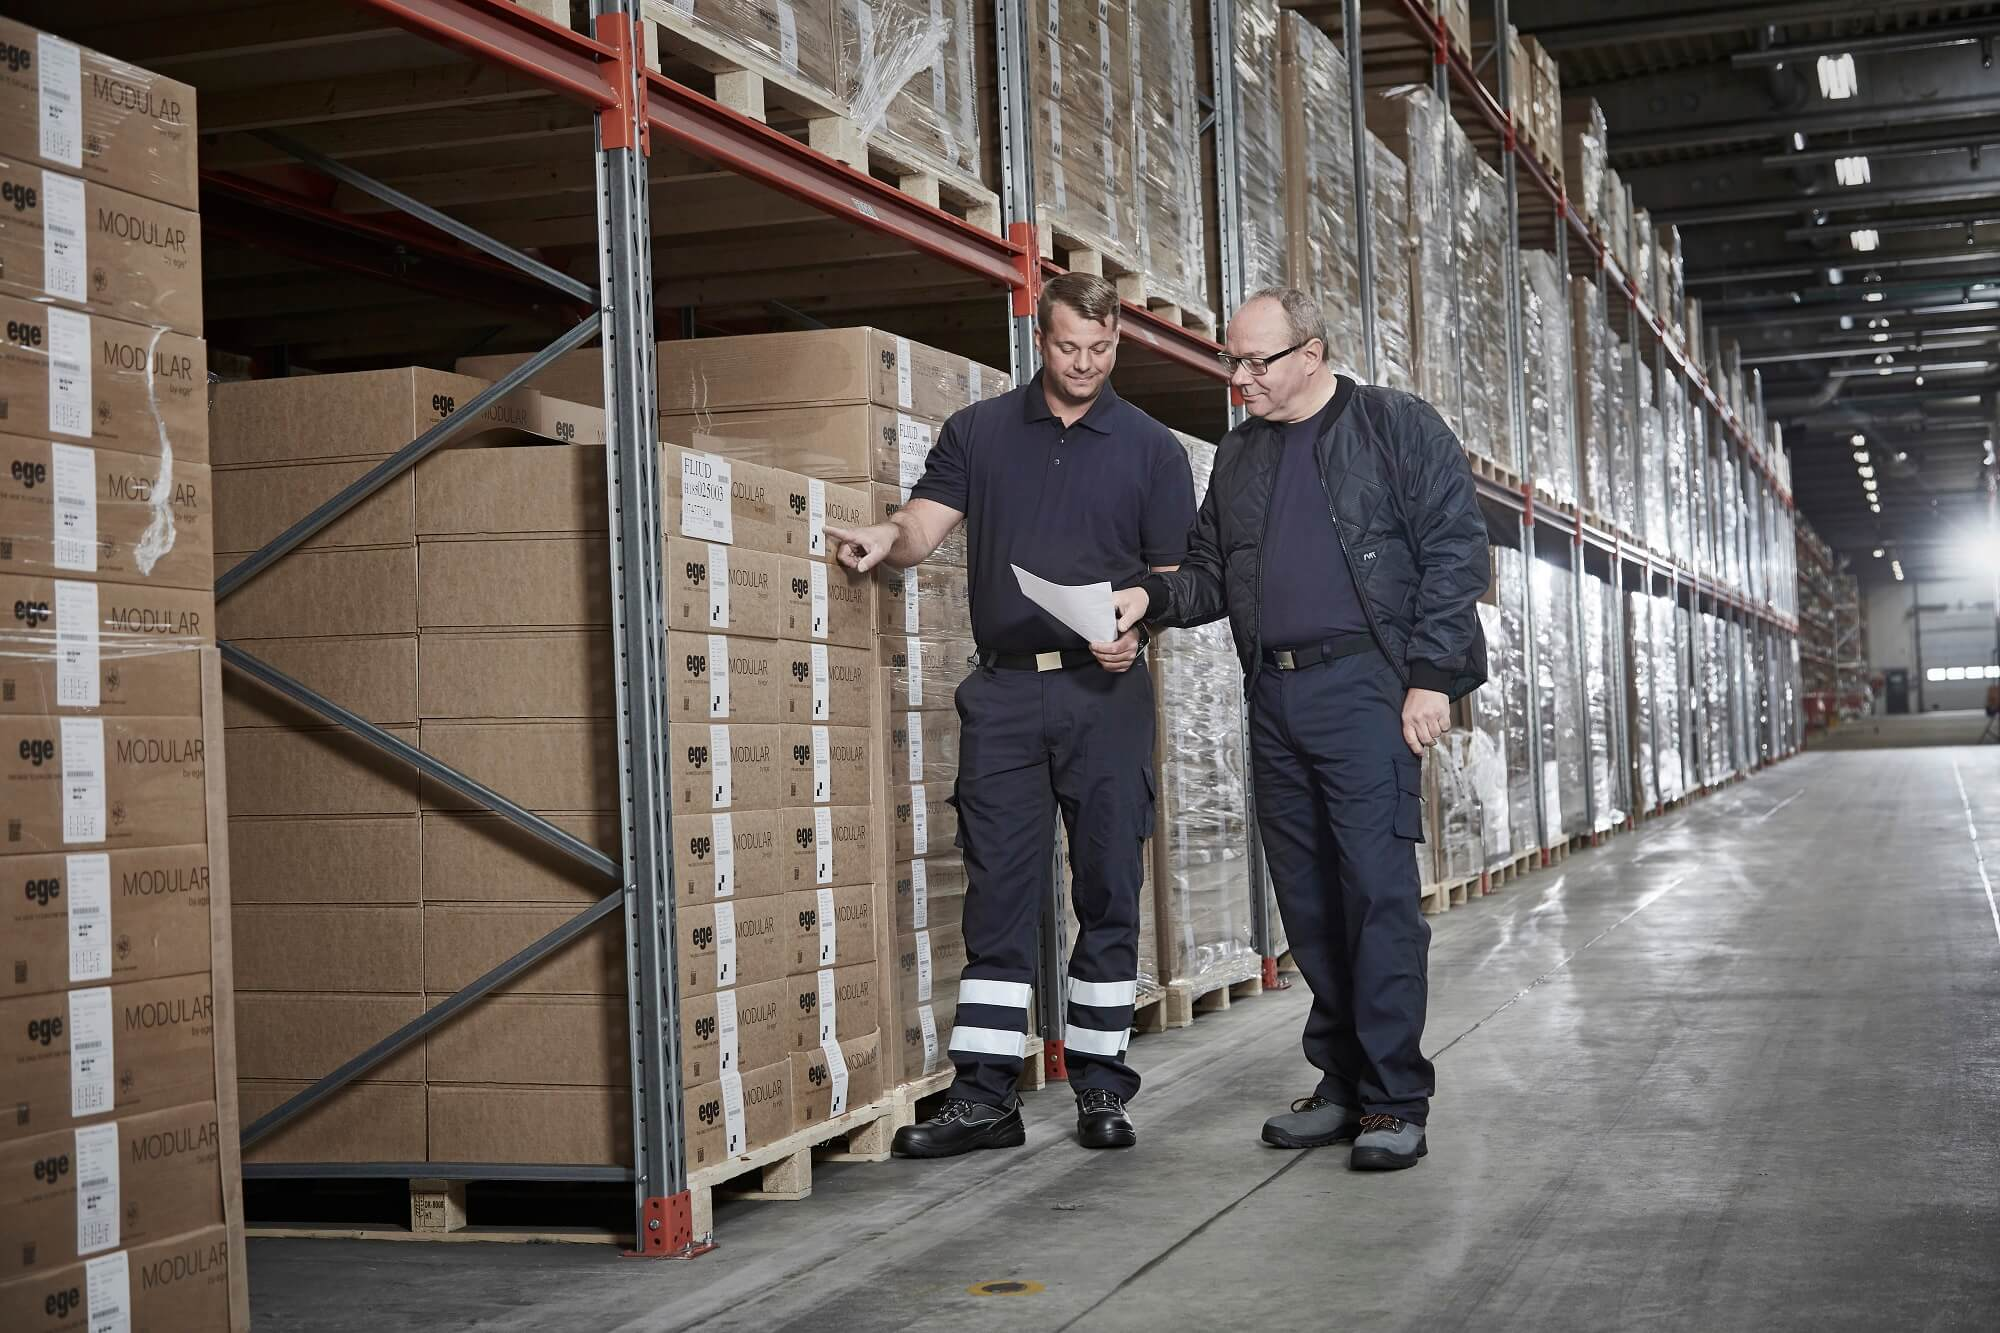 Warehouse workers - Work clothes - 2 Men